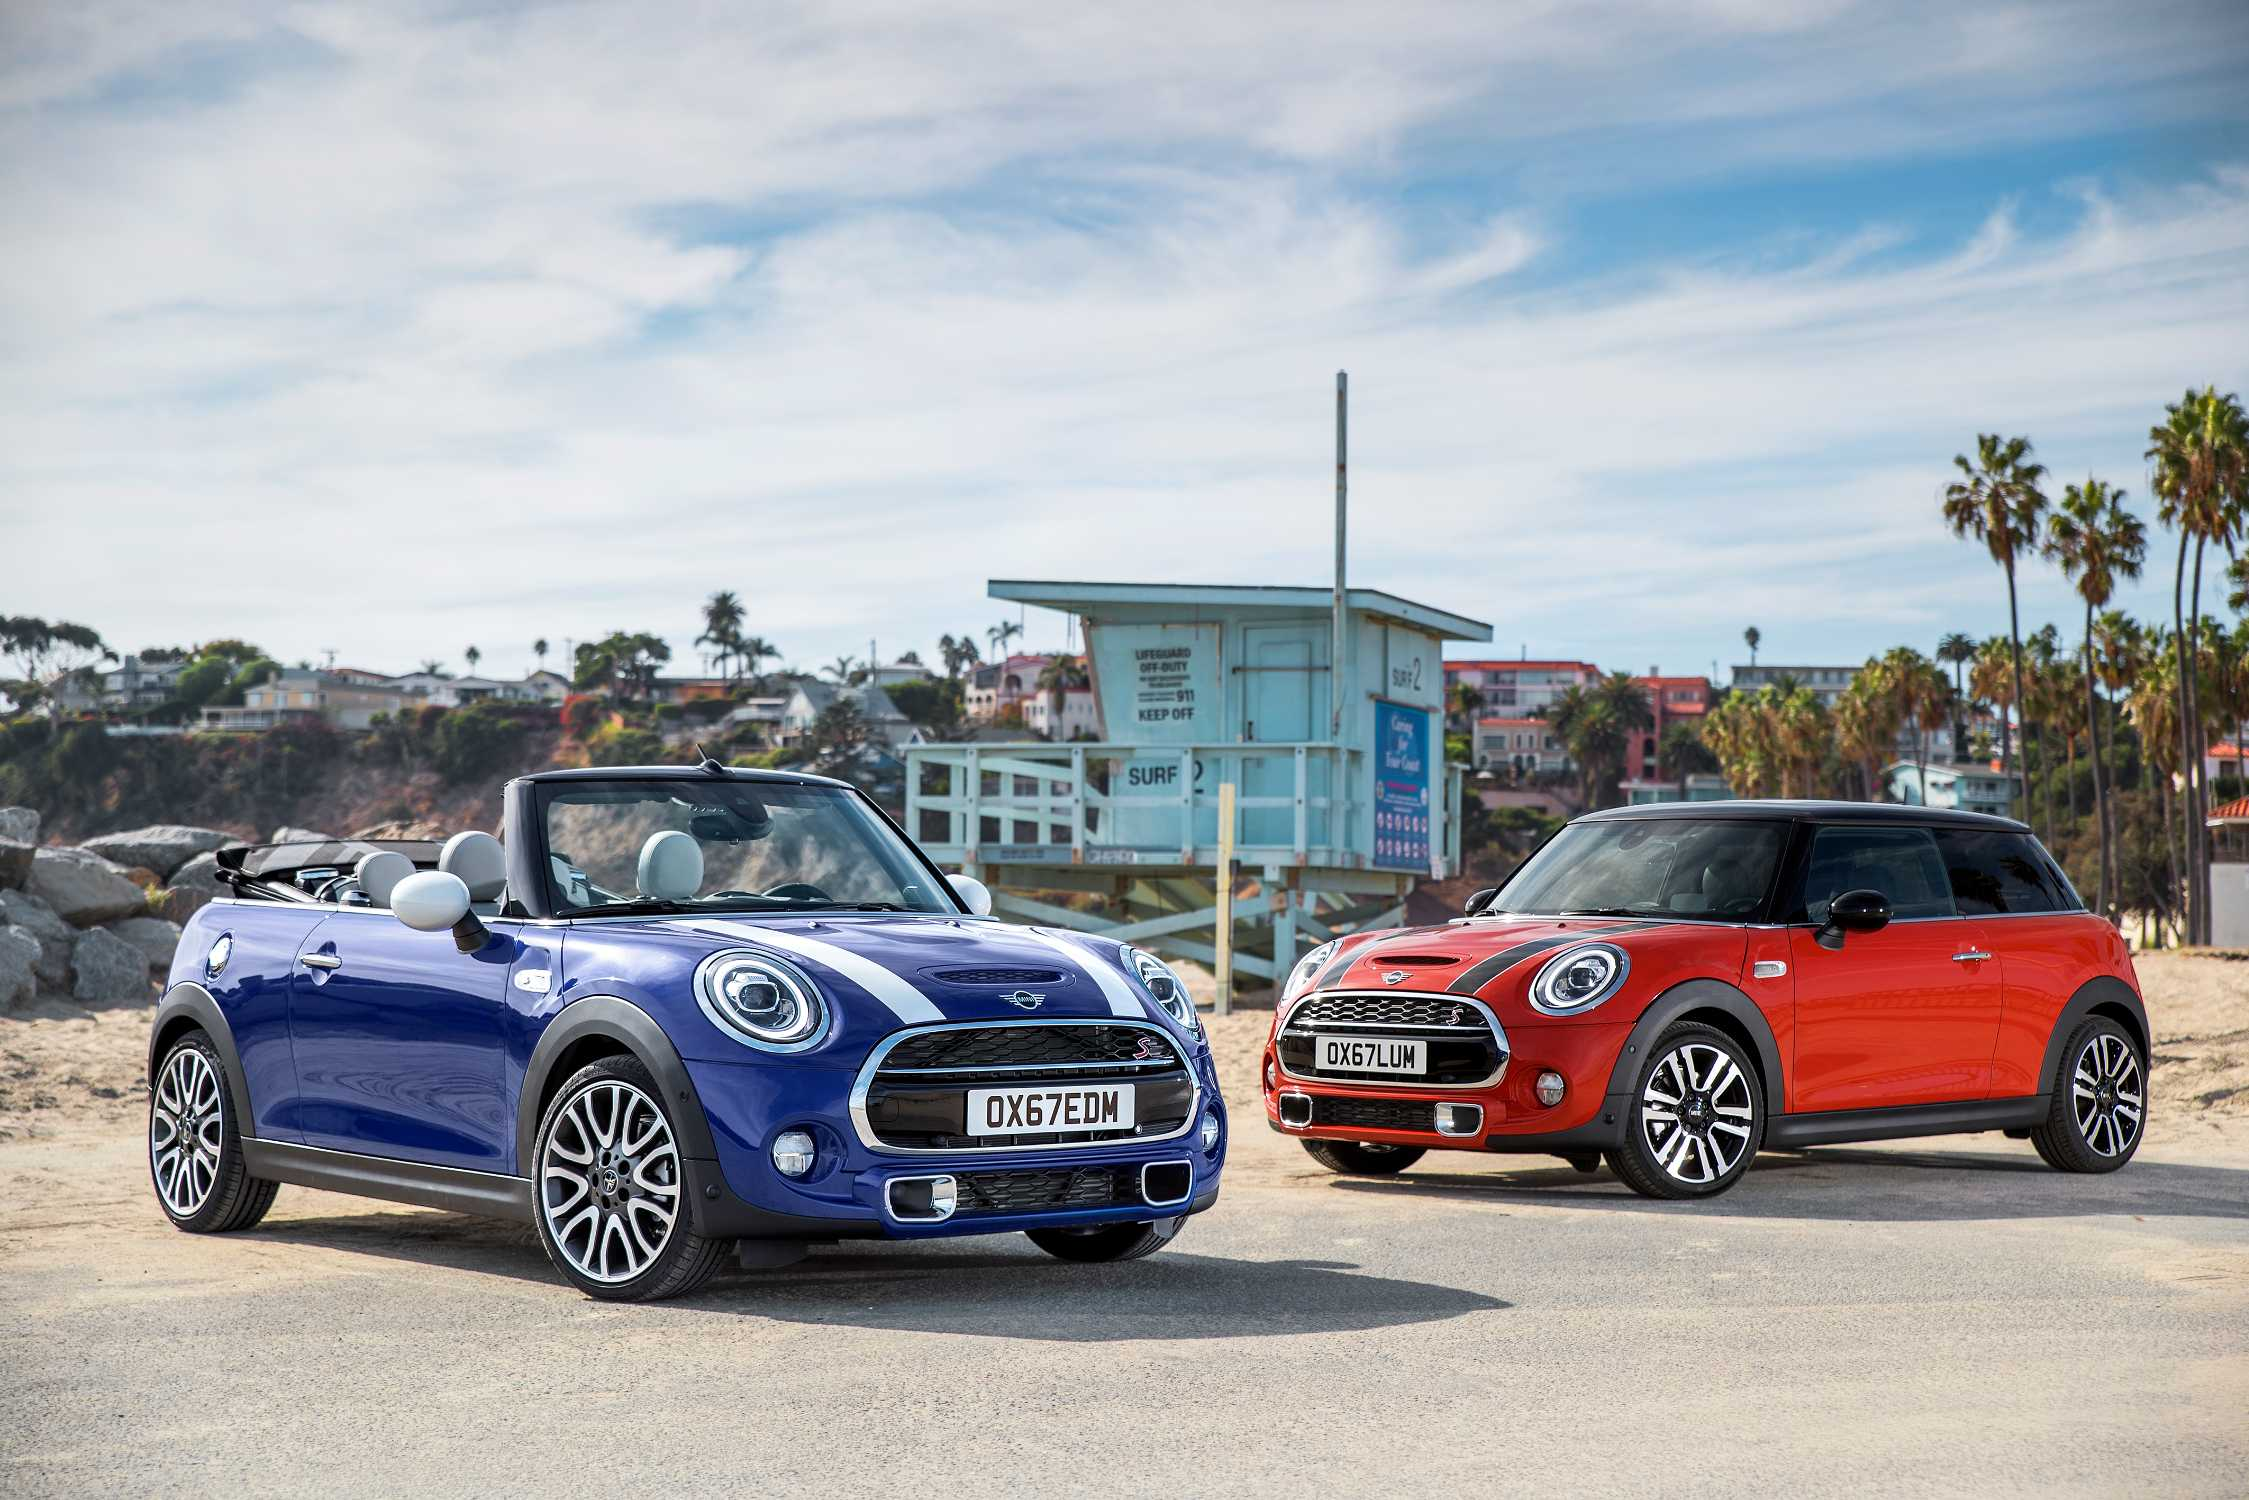 THE NEW MINI 3-DOOR HATCH, MINI 5-DOOR HATCH AND MINI